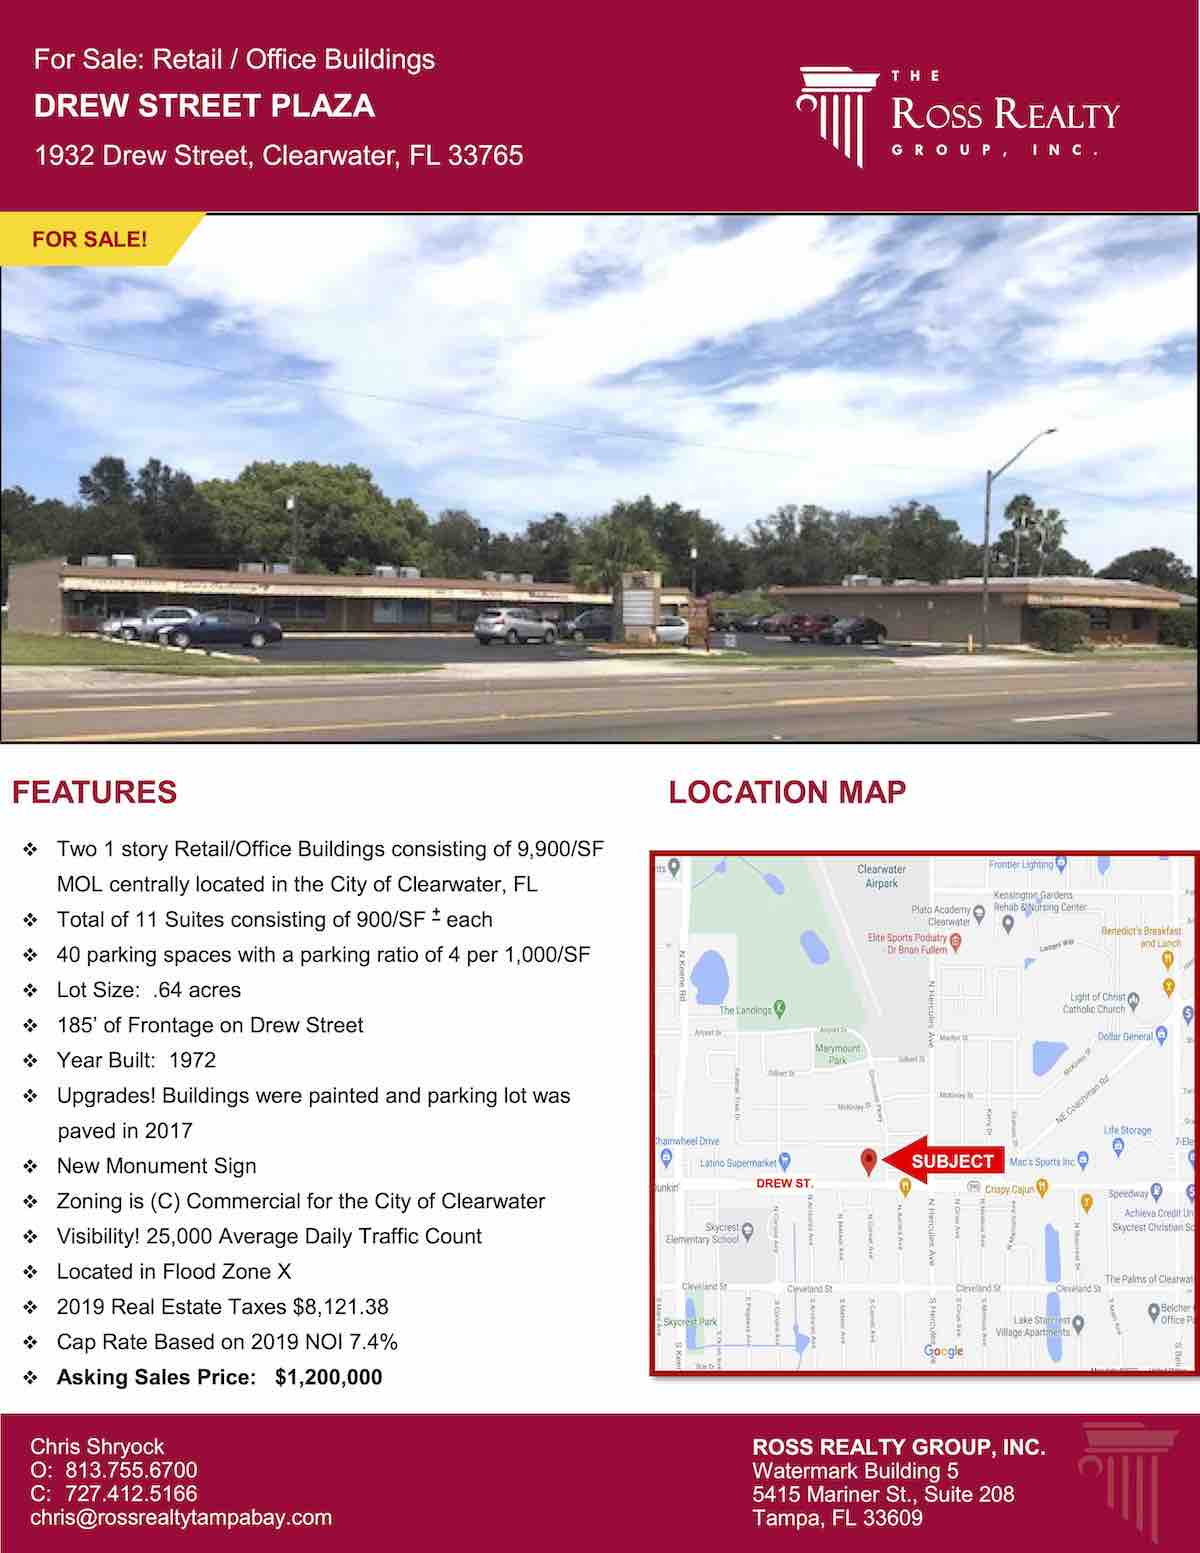 Tampa Commercial Real Estate - FOR SALE - Retail - Office Buildings - Drew Street Plaza - 1932 Drew Street, Clearwater, FL 33765 P1